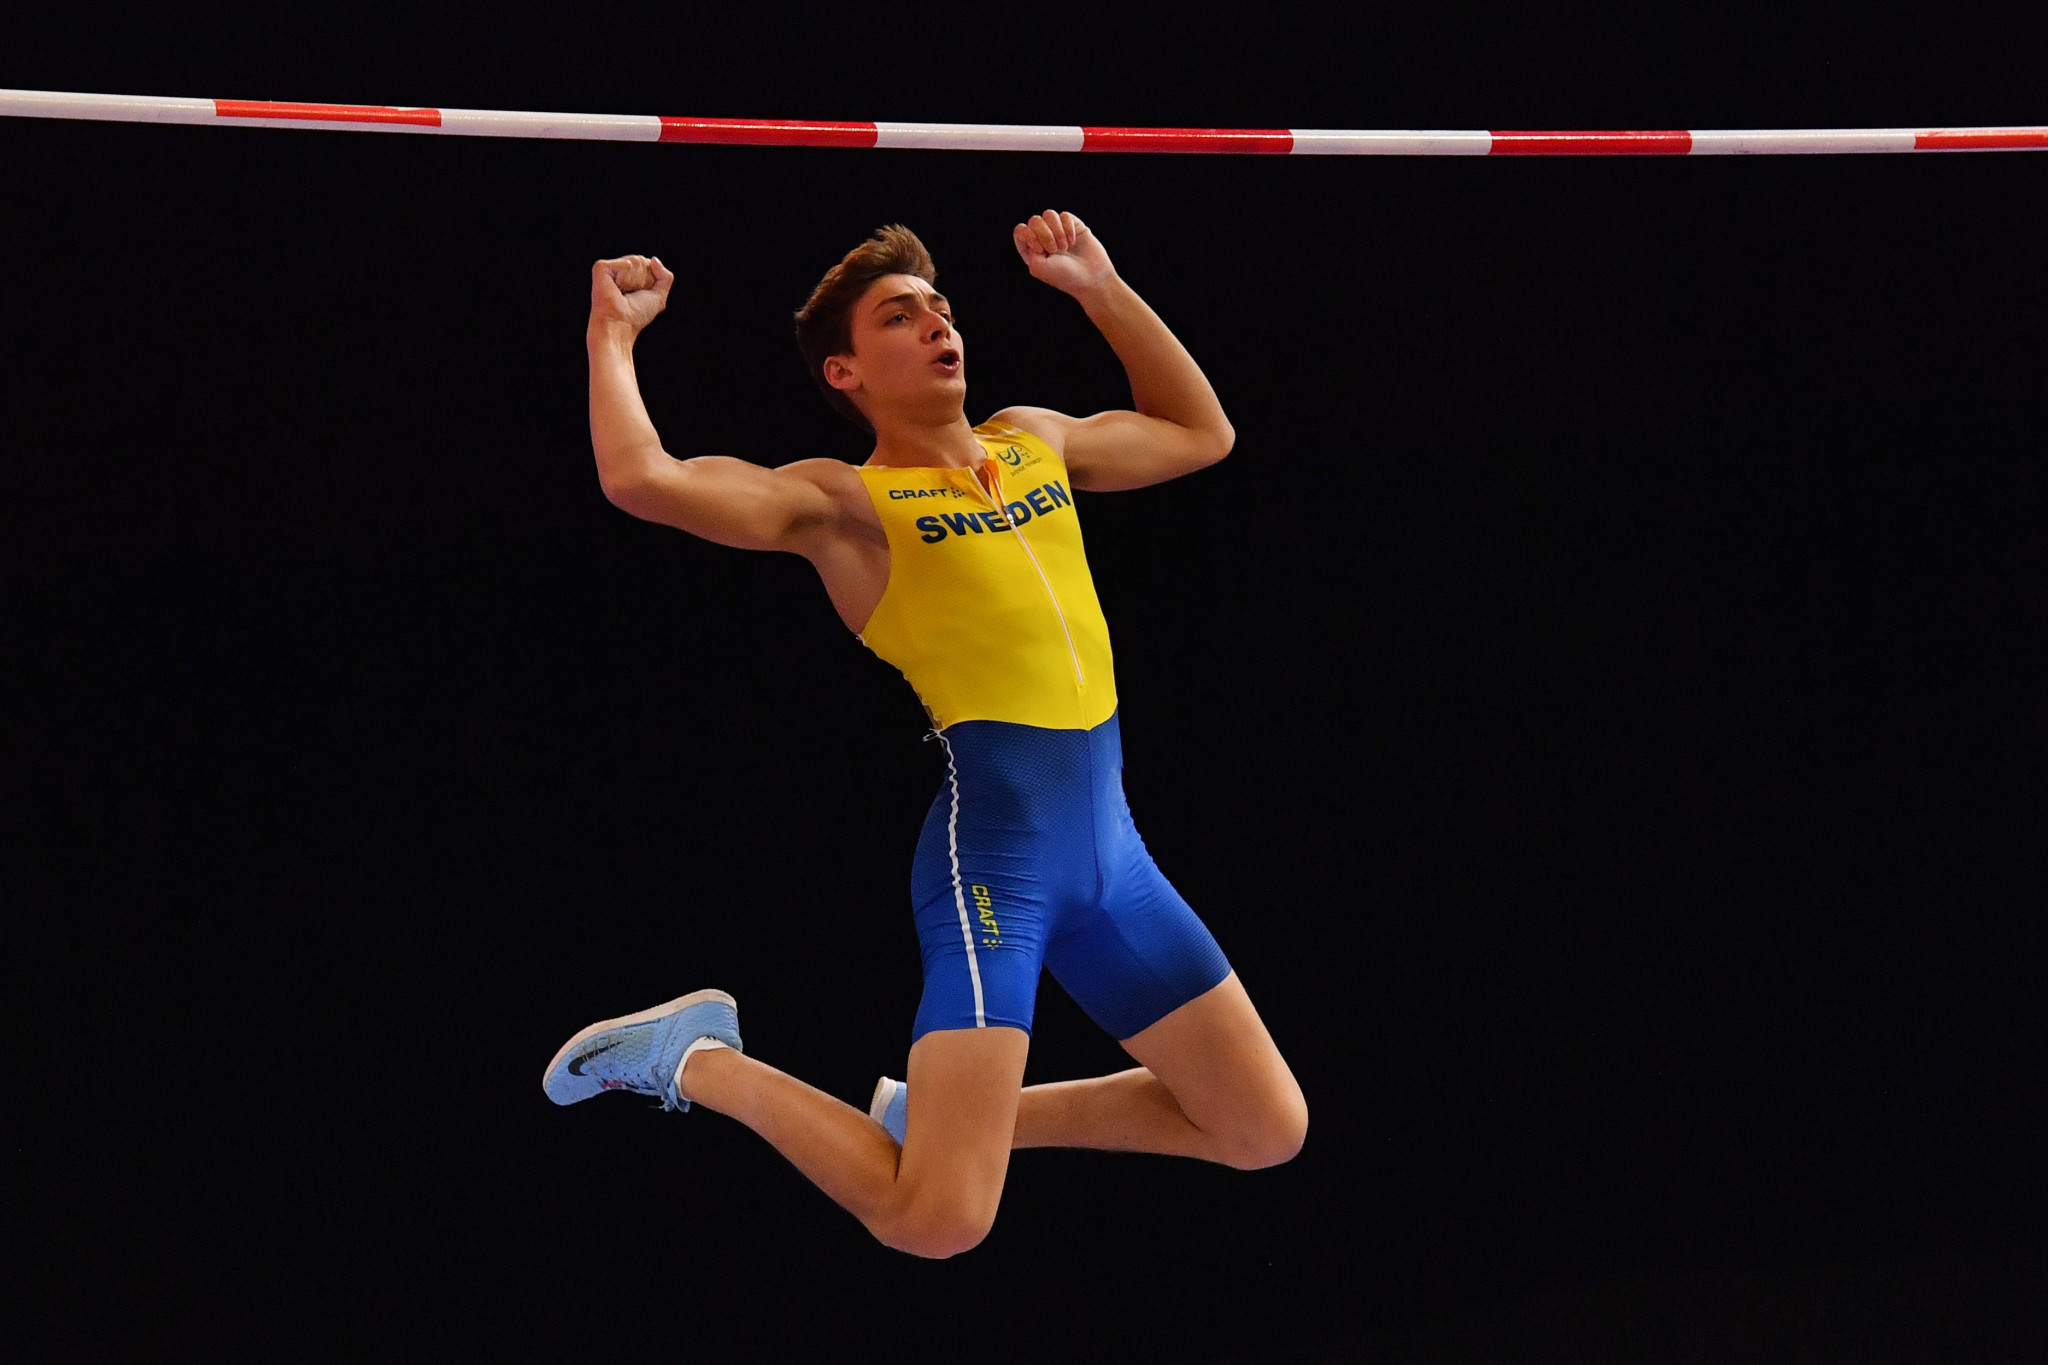 Swedish teenager up for ruling the world at home IAAF Diamond League meeting in Stockholm